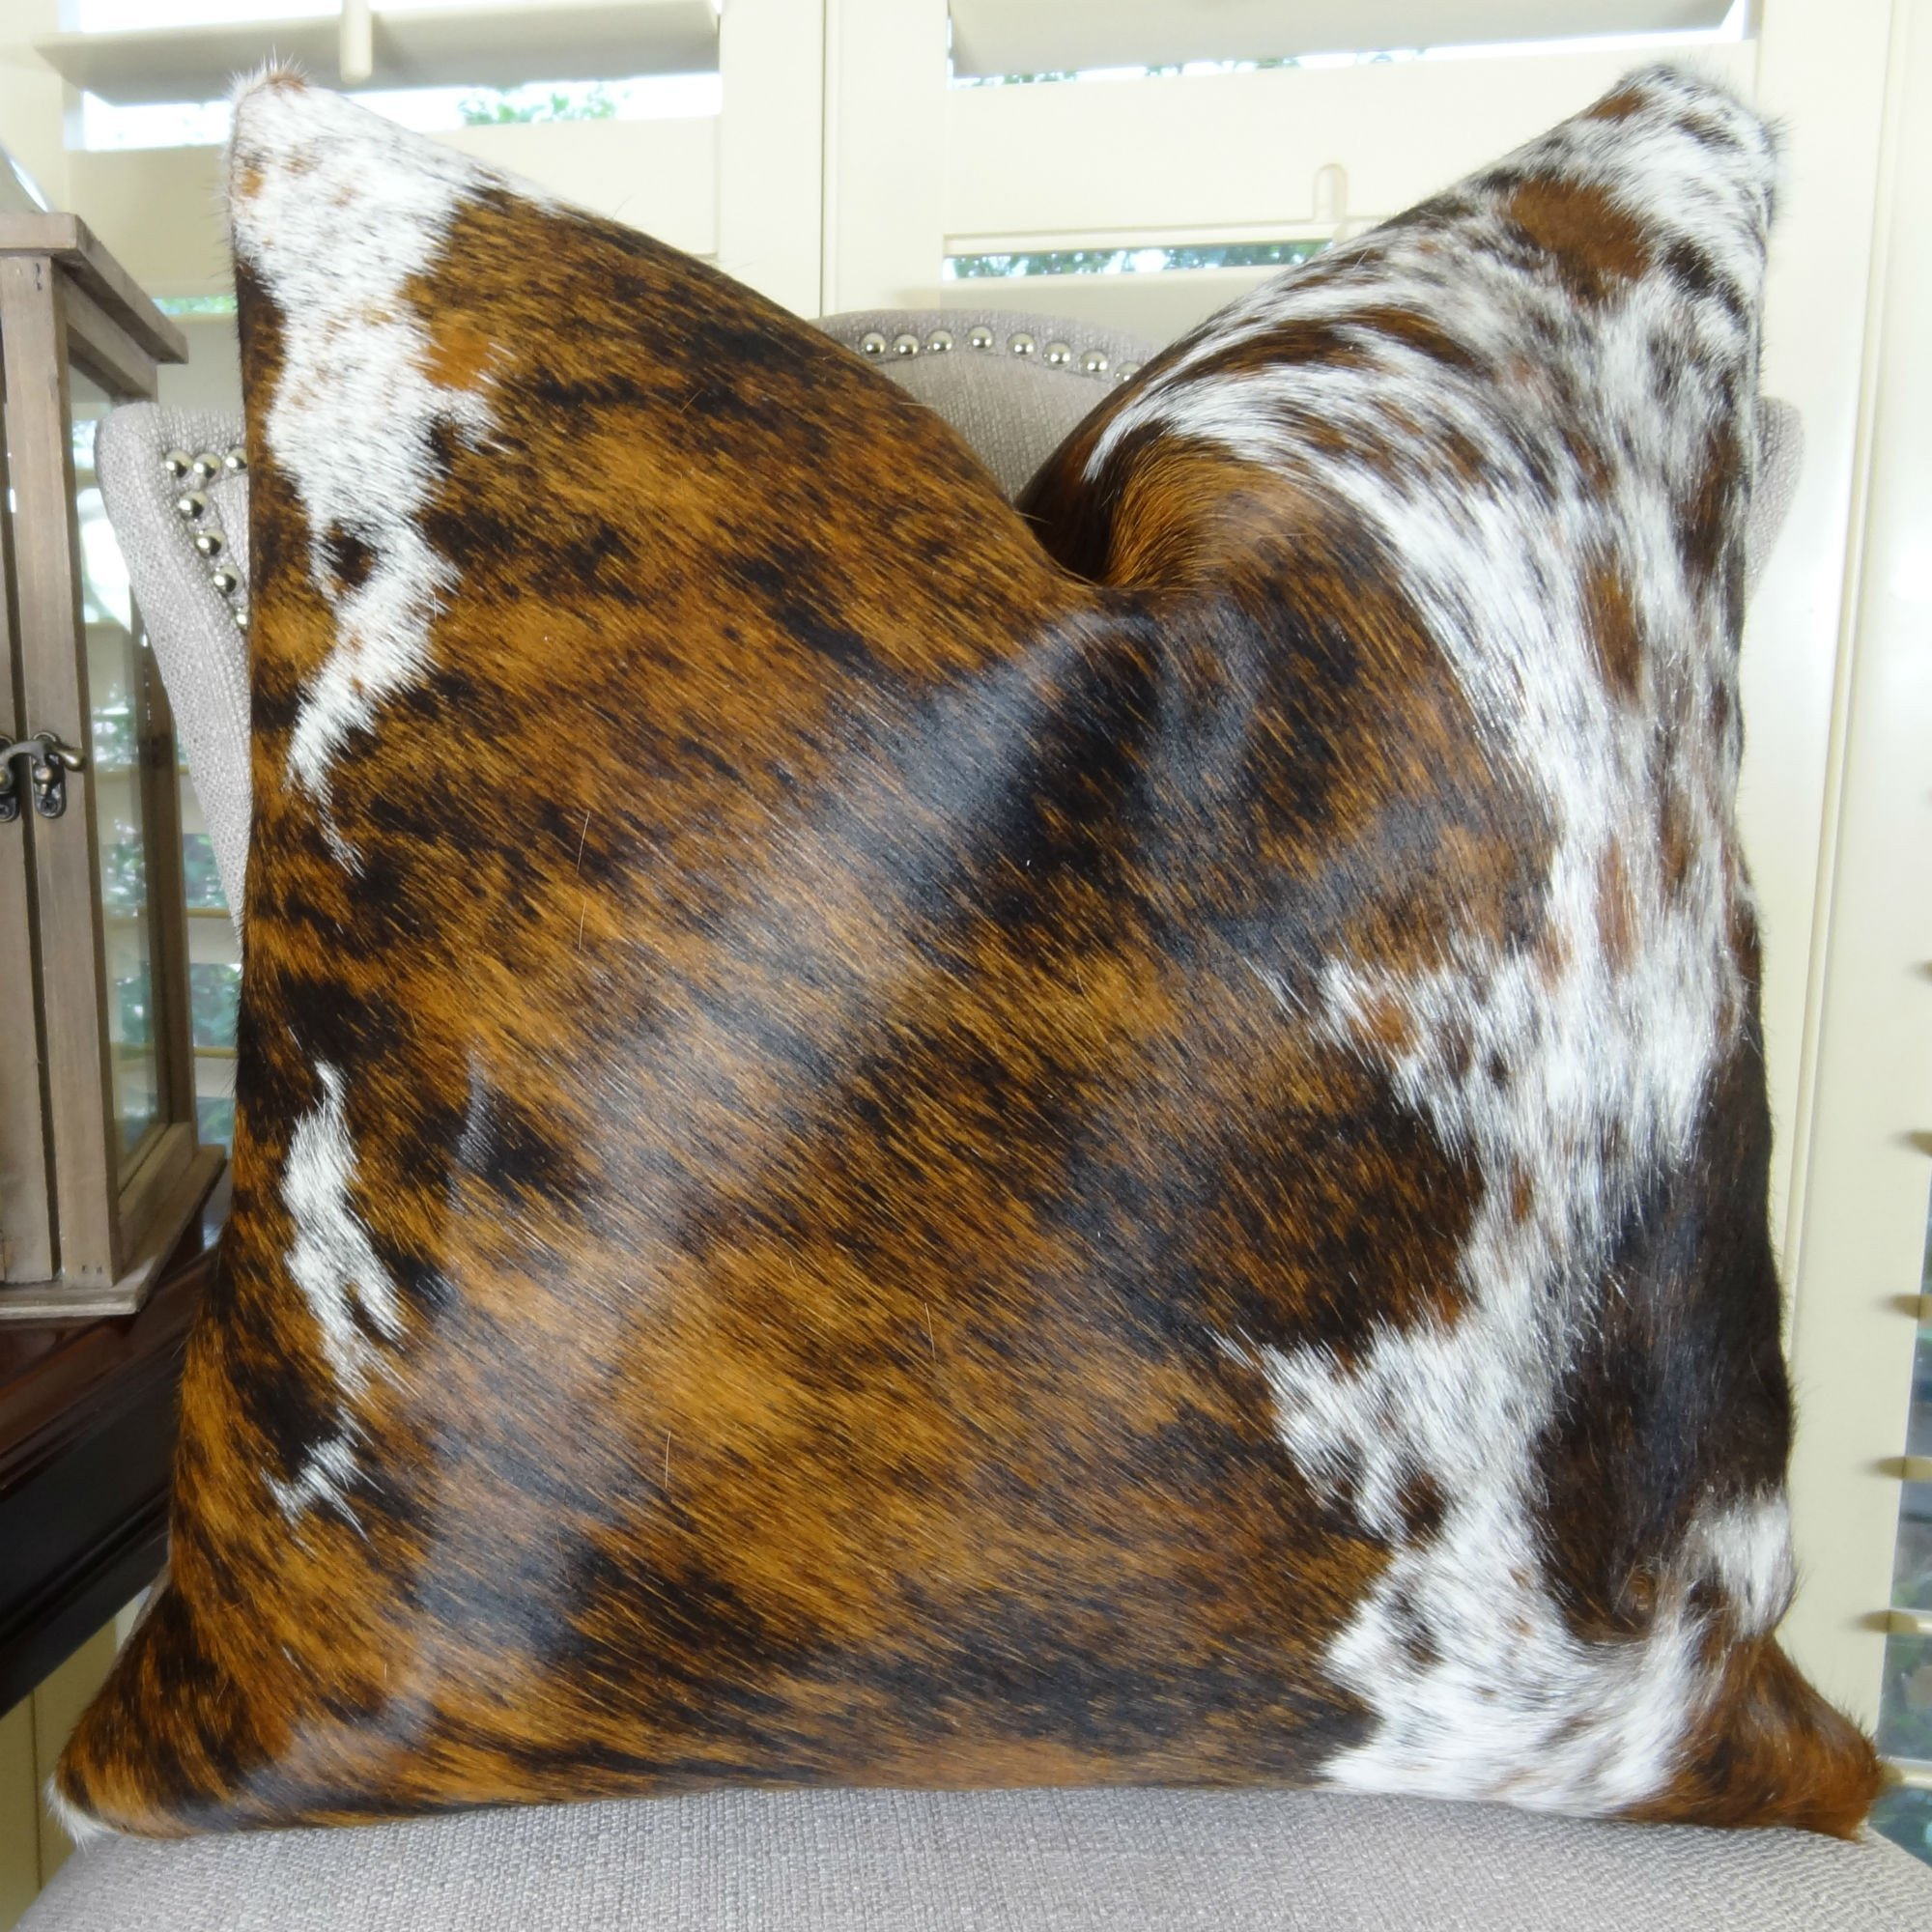 Thomas Collection Decorative Cowhide Throw Pillow, Dark Tri Color Decorative Brown Tan White Cowhide Pillow, High End Cowhide Accent Sofa Pillow, INCLUDES POLYFILL INSERT, Made in US, 16607 by Thomas Collection